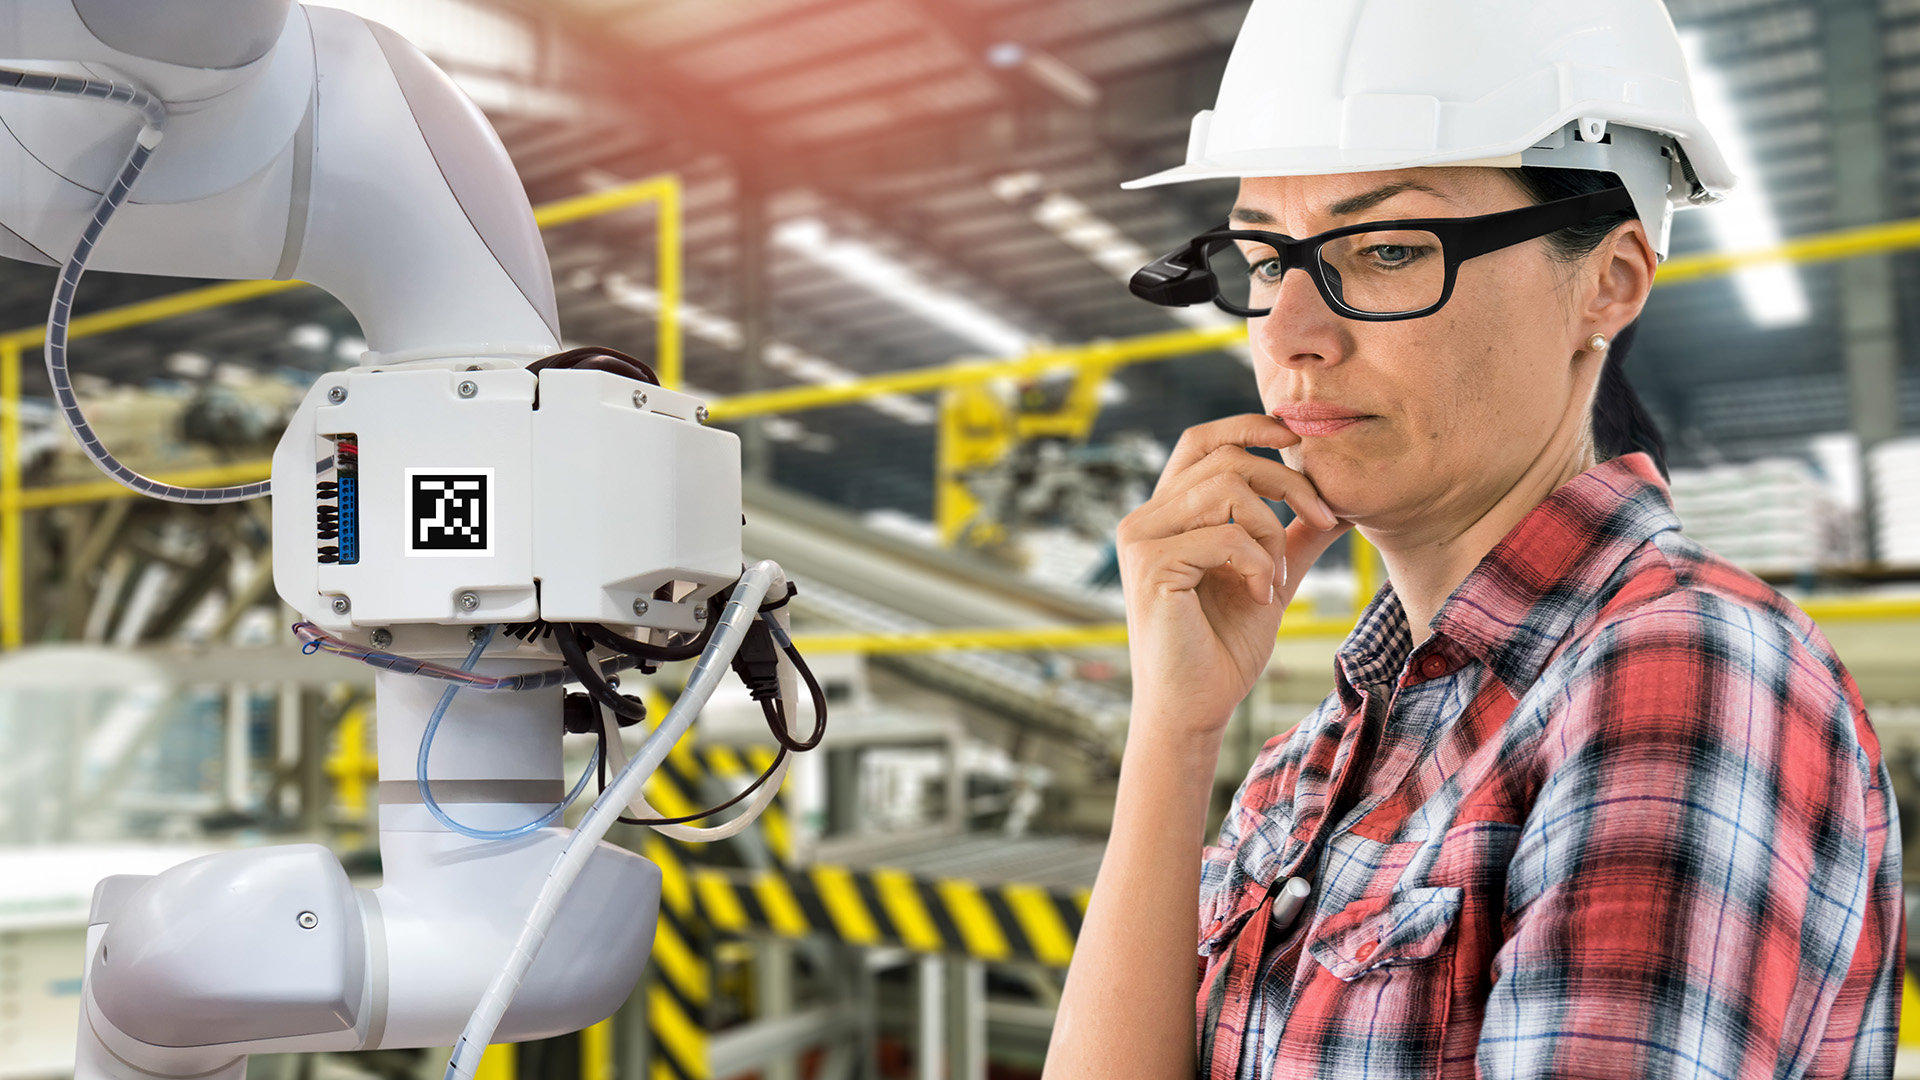 engineer woman wearing ar classes in a factory looking at robot arm